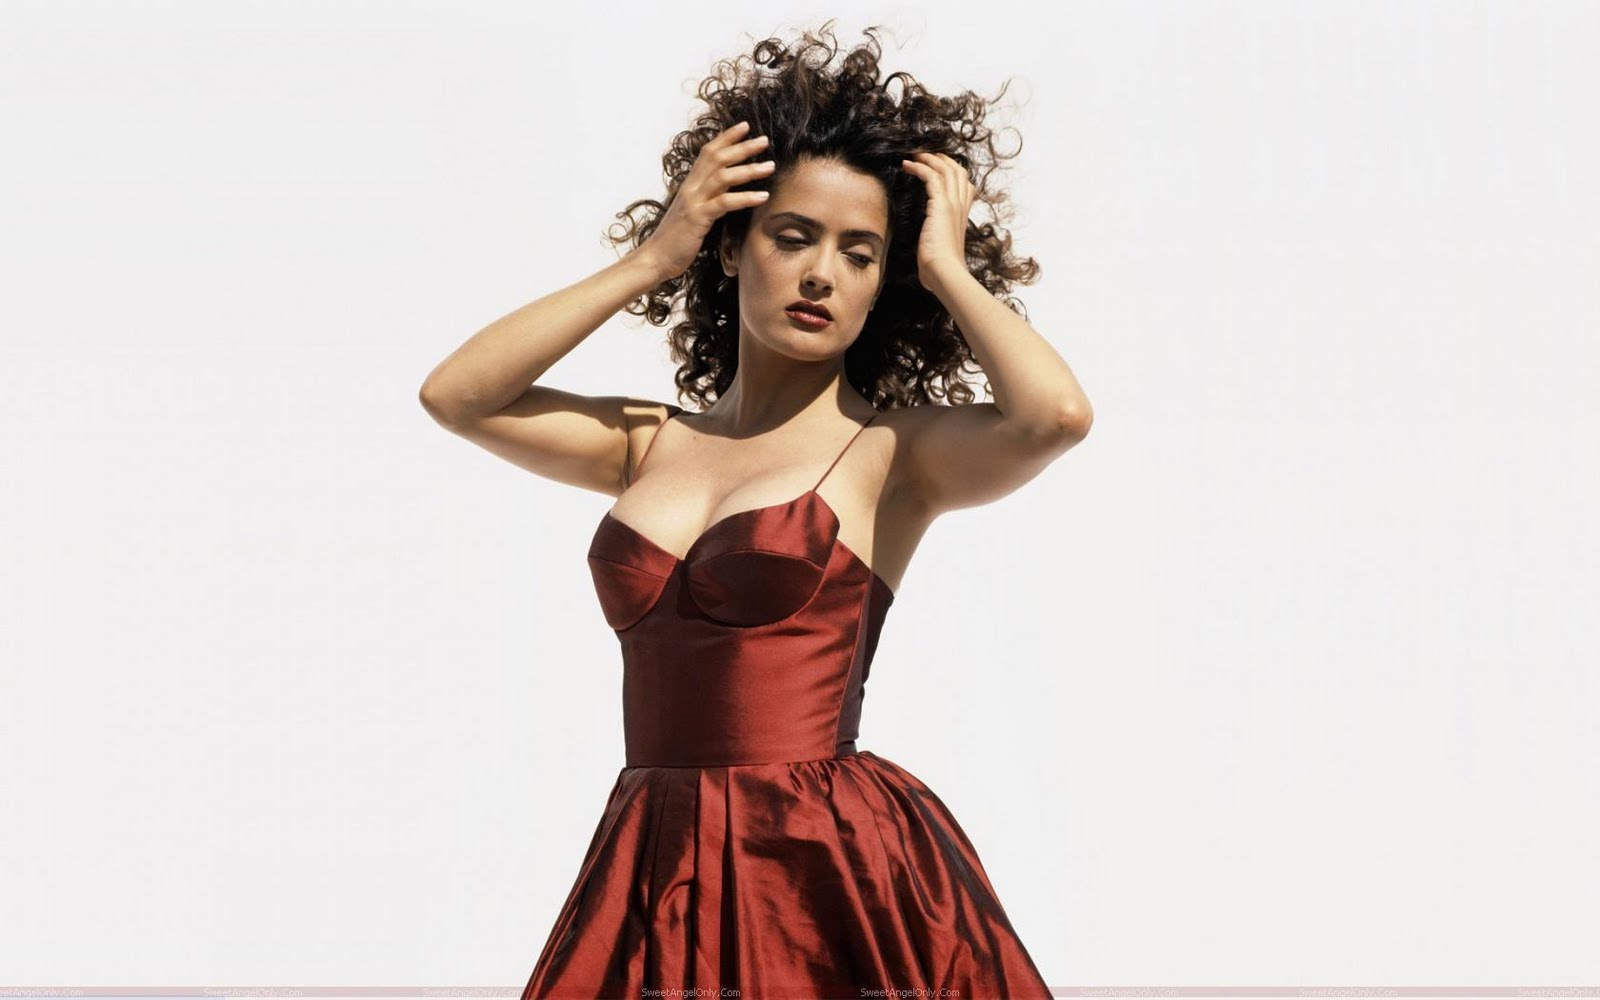 http://2.bp.blogspot.com/-2bactwMPgJA/TbBOX9nY-TI/AAAAAAAAG18/u6k7CZ4PgOg/s1600/salma_hayek_hot_wallpaper_in_curly_hair.jpg